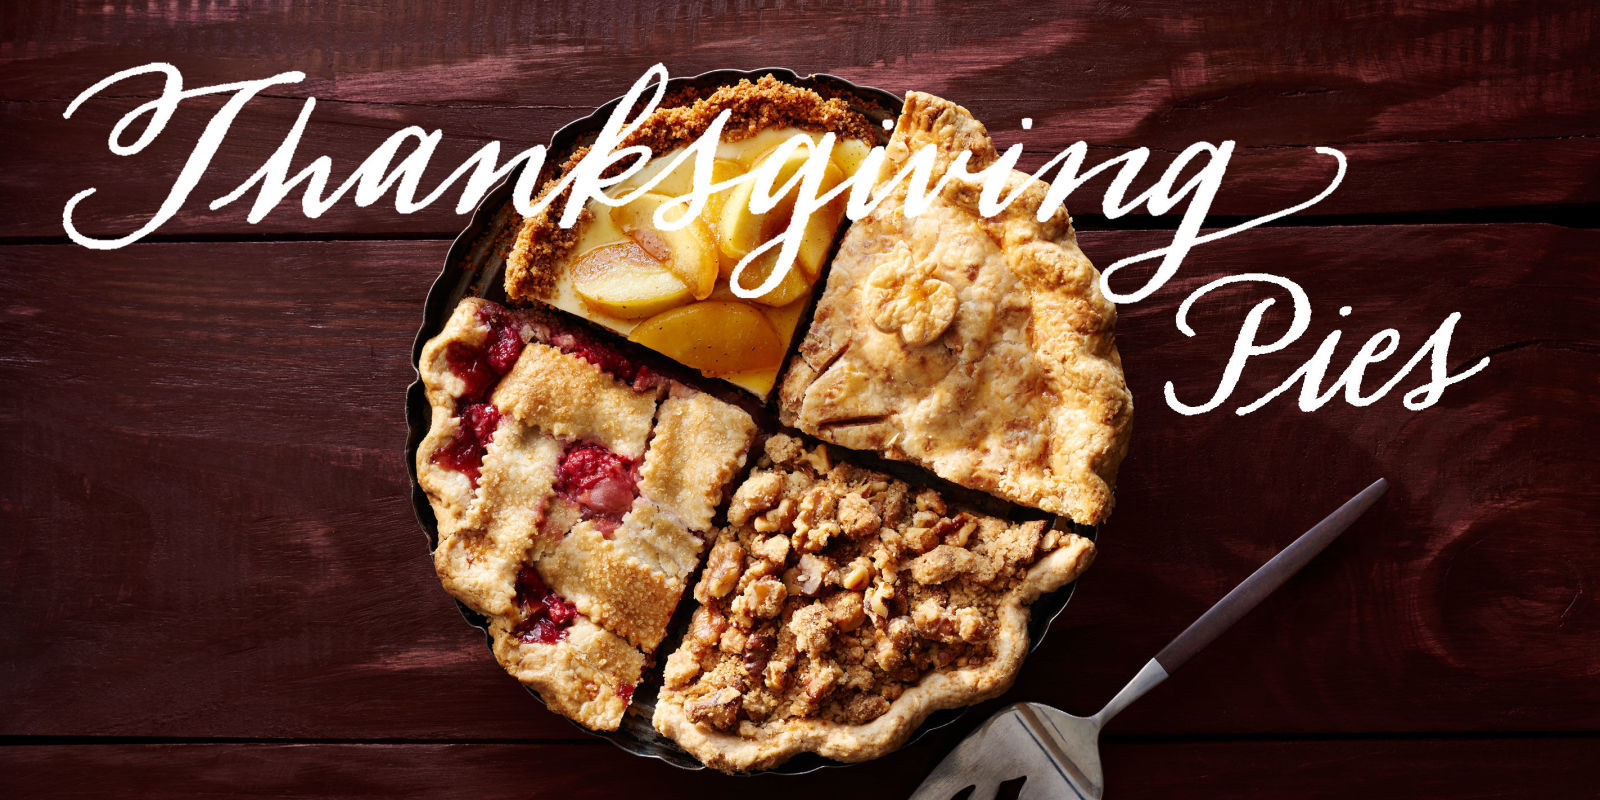 Best Thanksgiving Pie Recipes  38 Best Thanksgiving Pies Recipes and Ideas for